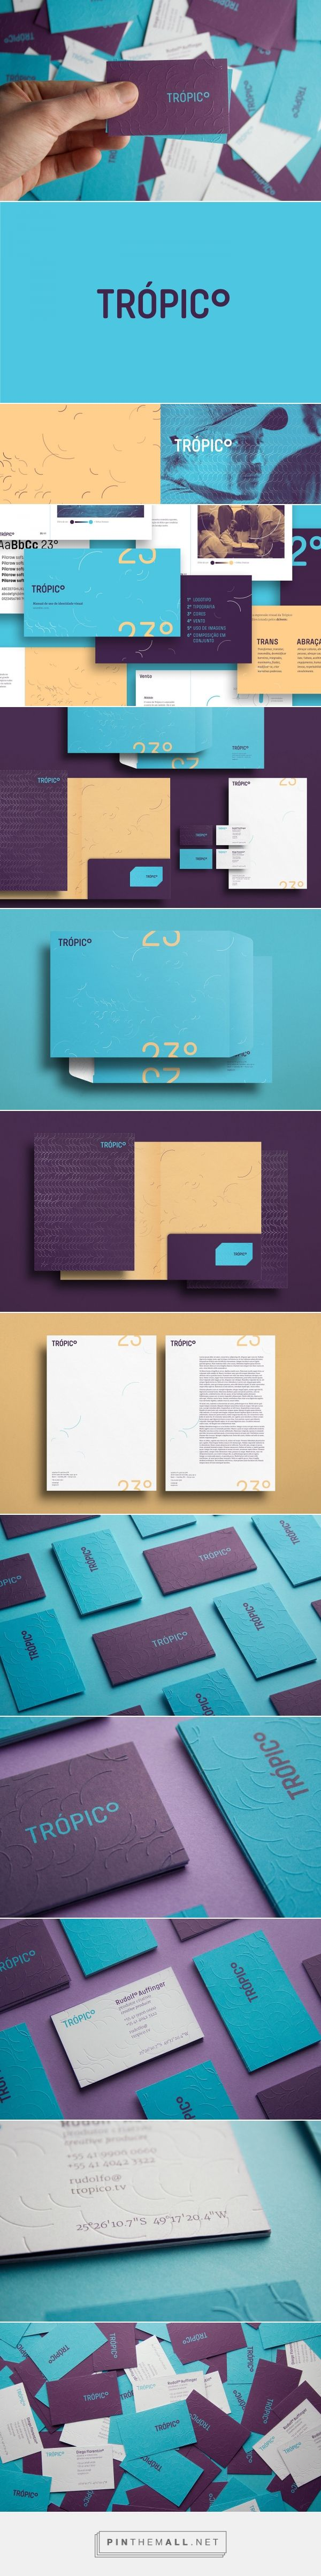 Trópico - Sweet Branding and Color Scheme